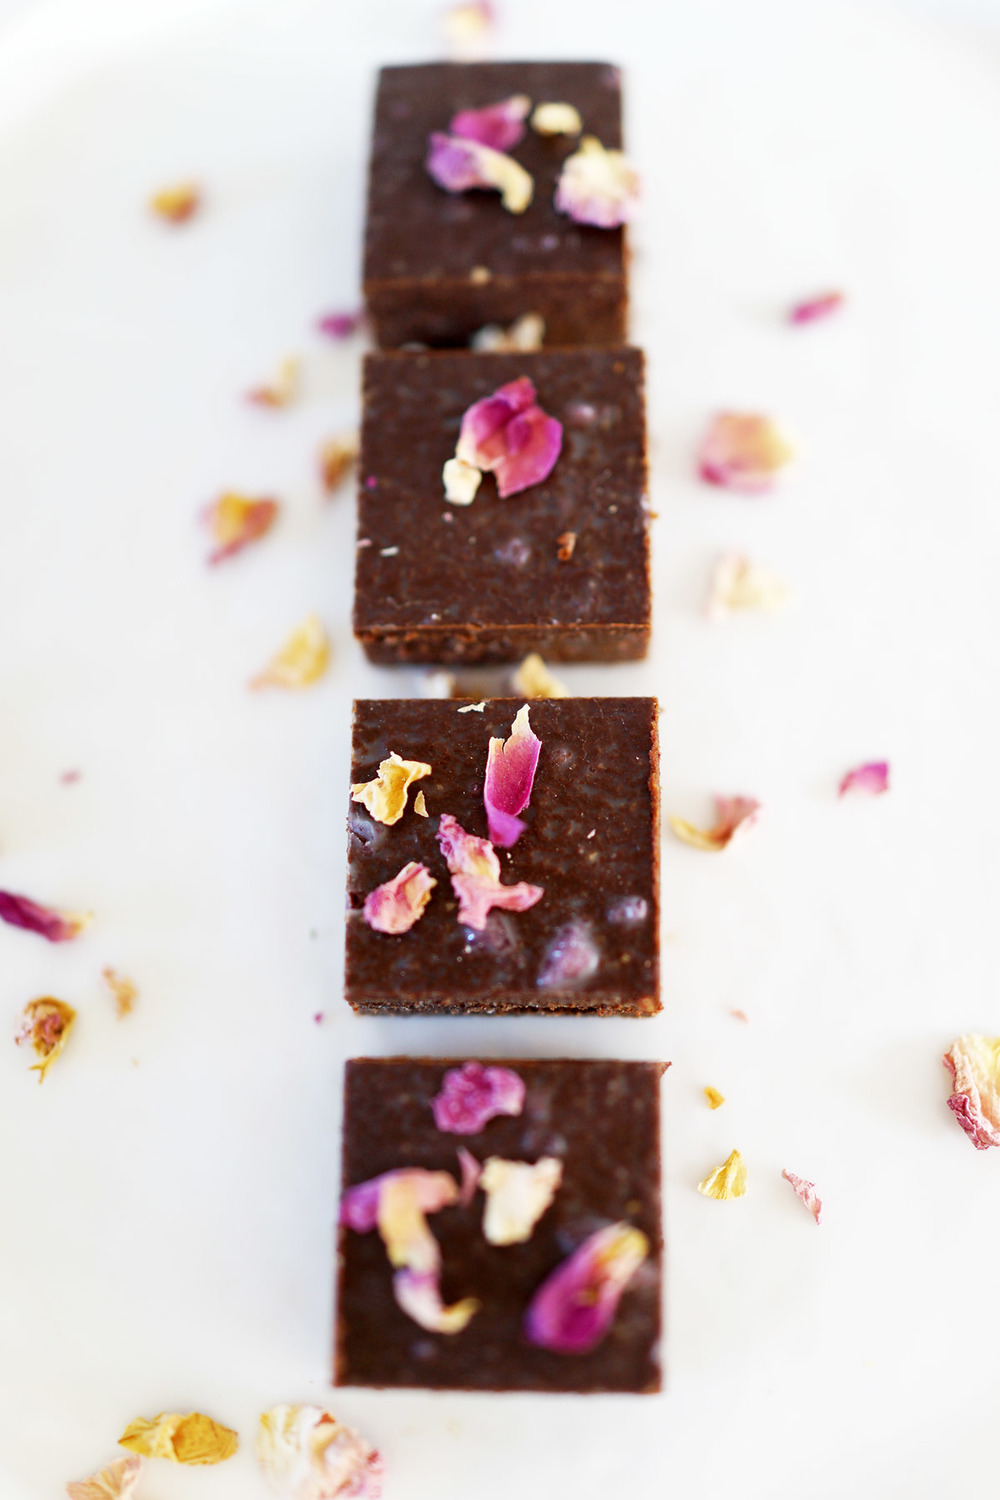 Cacao-rose-fudge-DSC08022.jpg